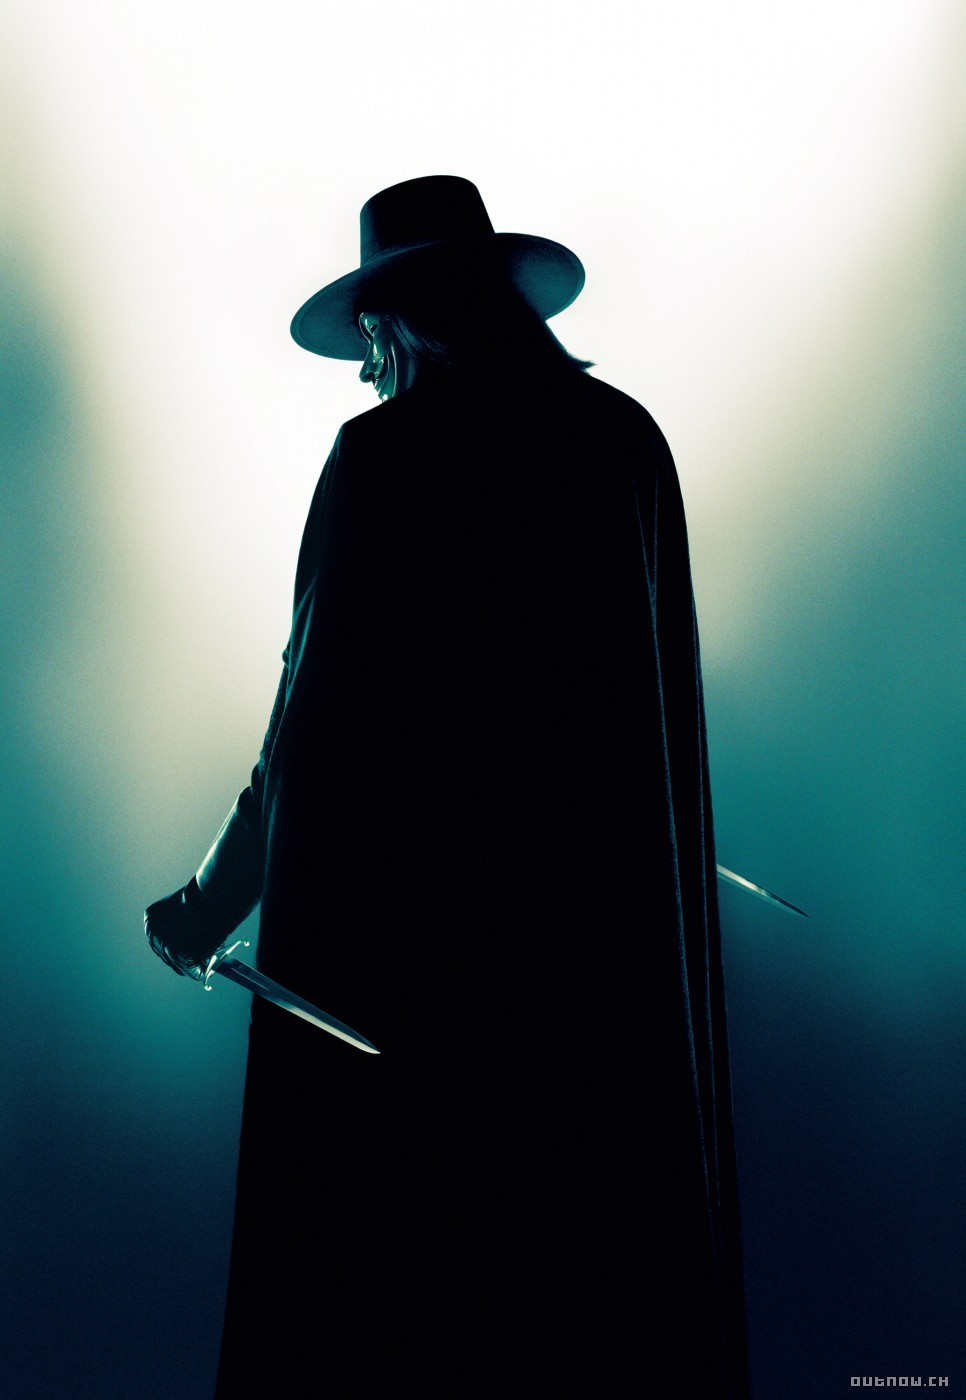 10476 download wallpaper Cinema, V For Vendetta screensavers and pictures for free